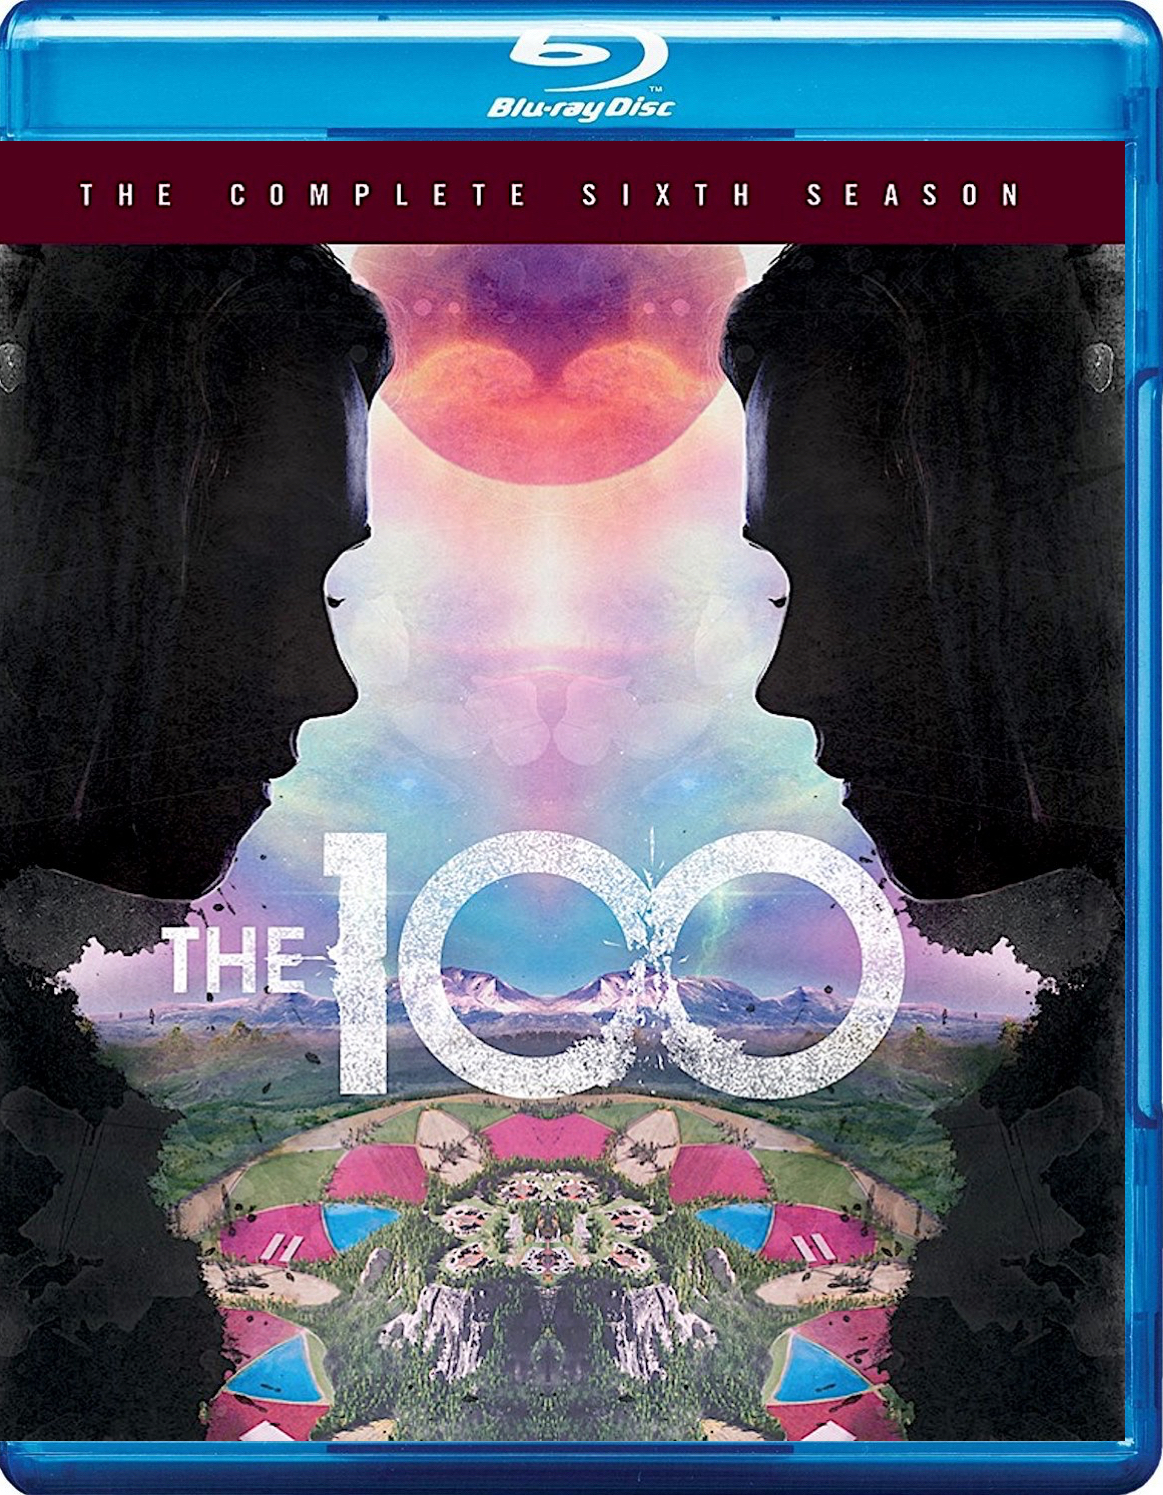 blu-ray and dvd covers: WARNER BROTHERS ARCHIVE BLU-RAYS